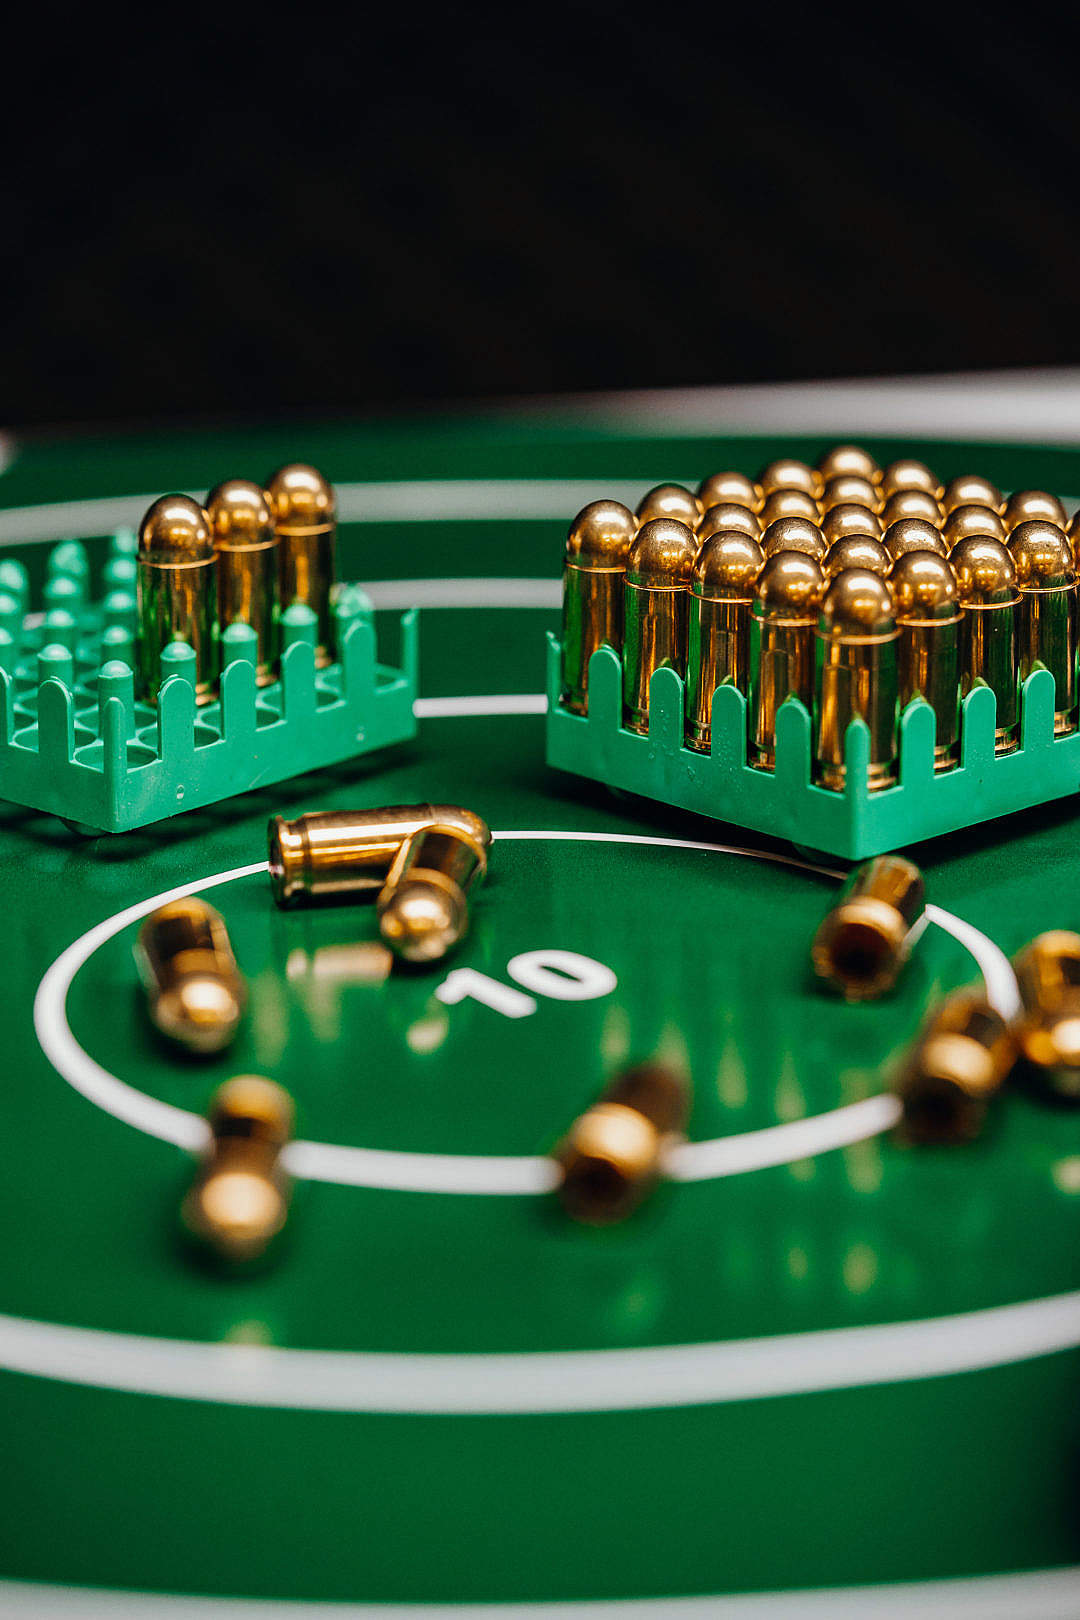 Download Target with Gold Bullets FREE Stock Photo